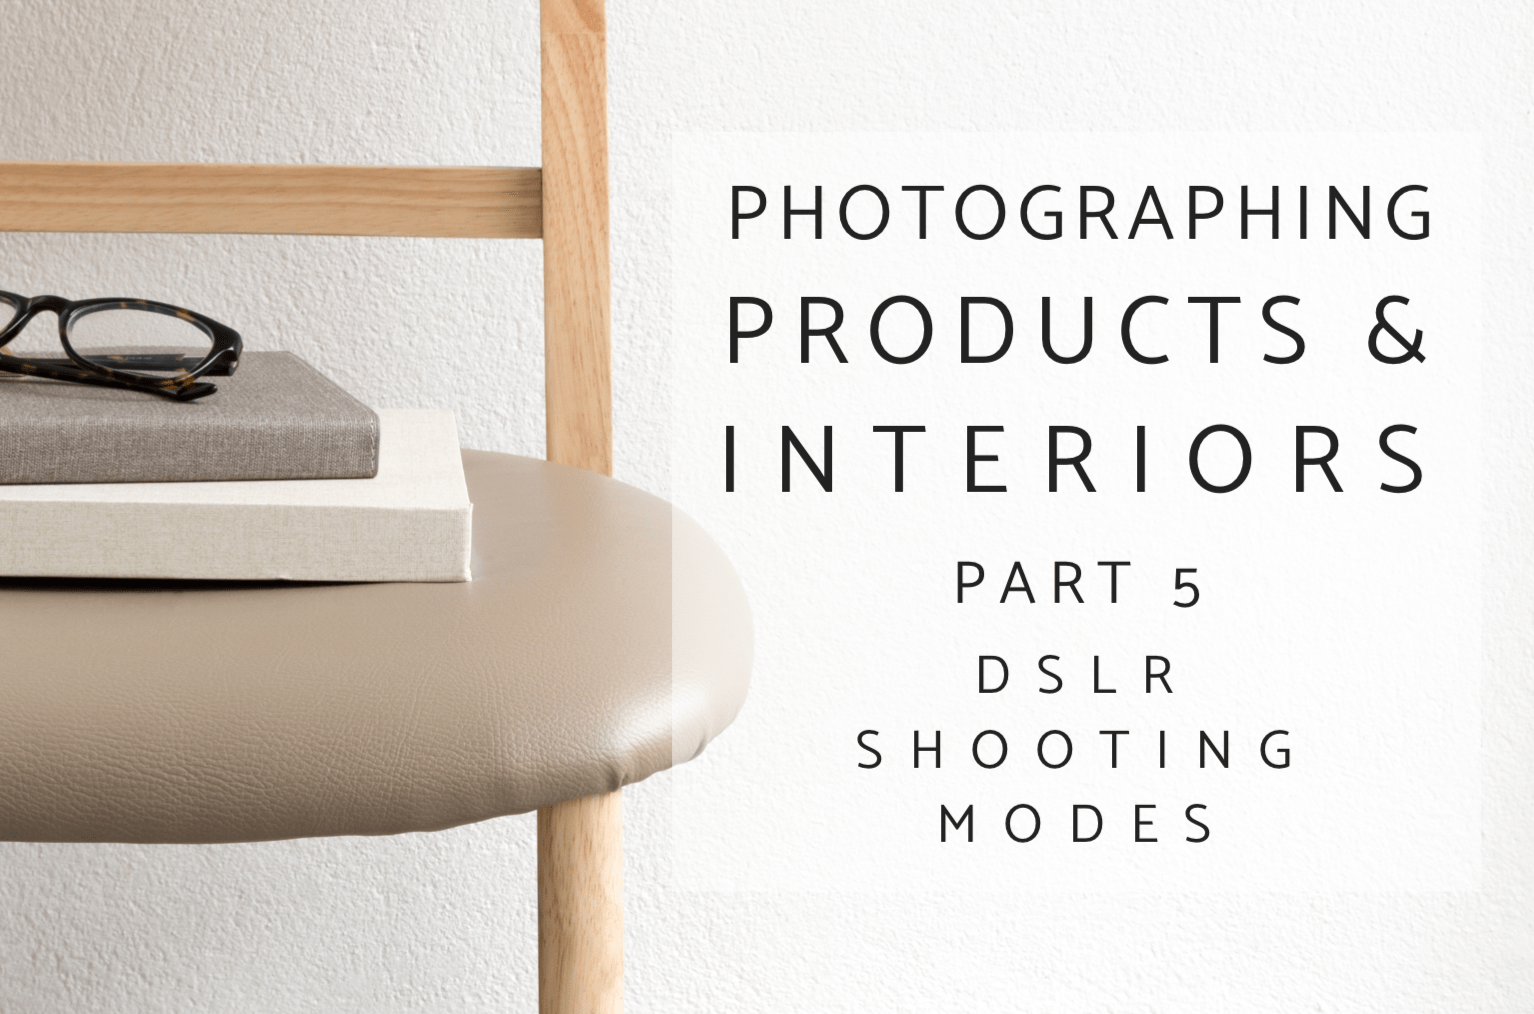 This is part 5 of my Photographing Interiors and Products series: what DSLR shooting mode to use when photographing interiors and products. #interiorphotography #productphotography #photography #blogphotography